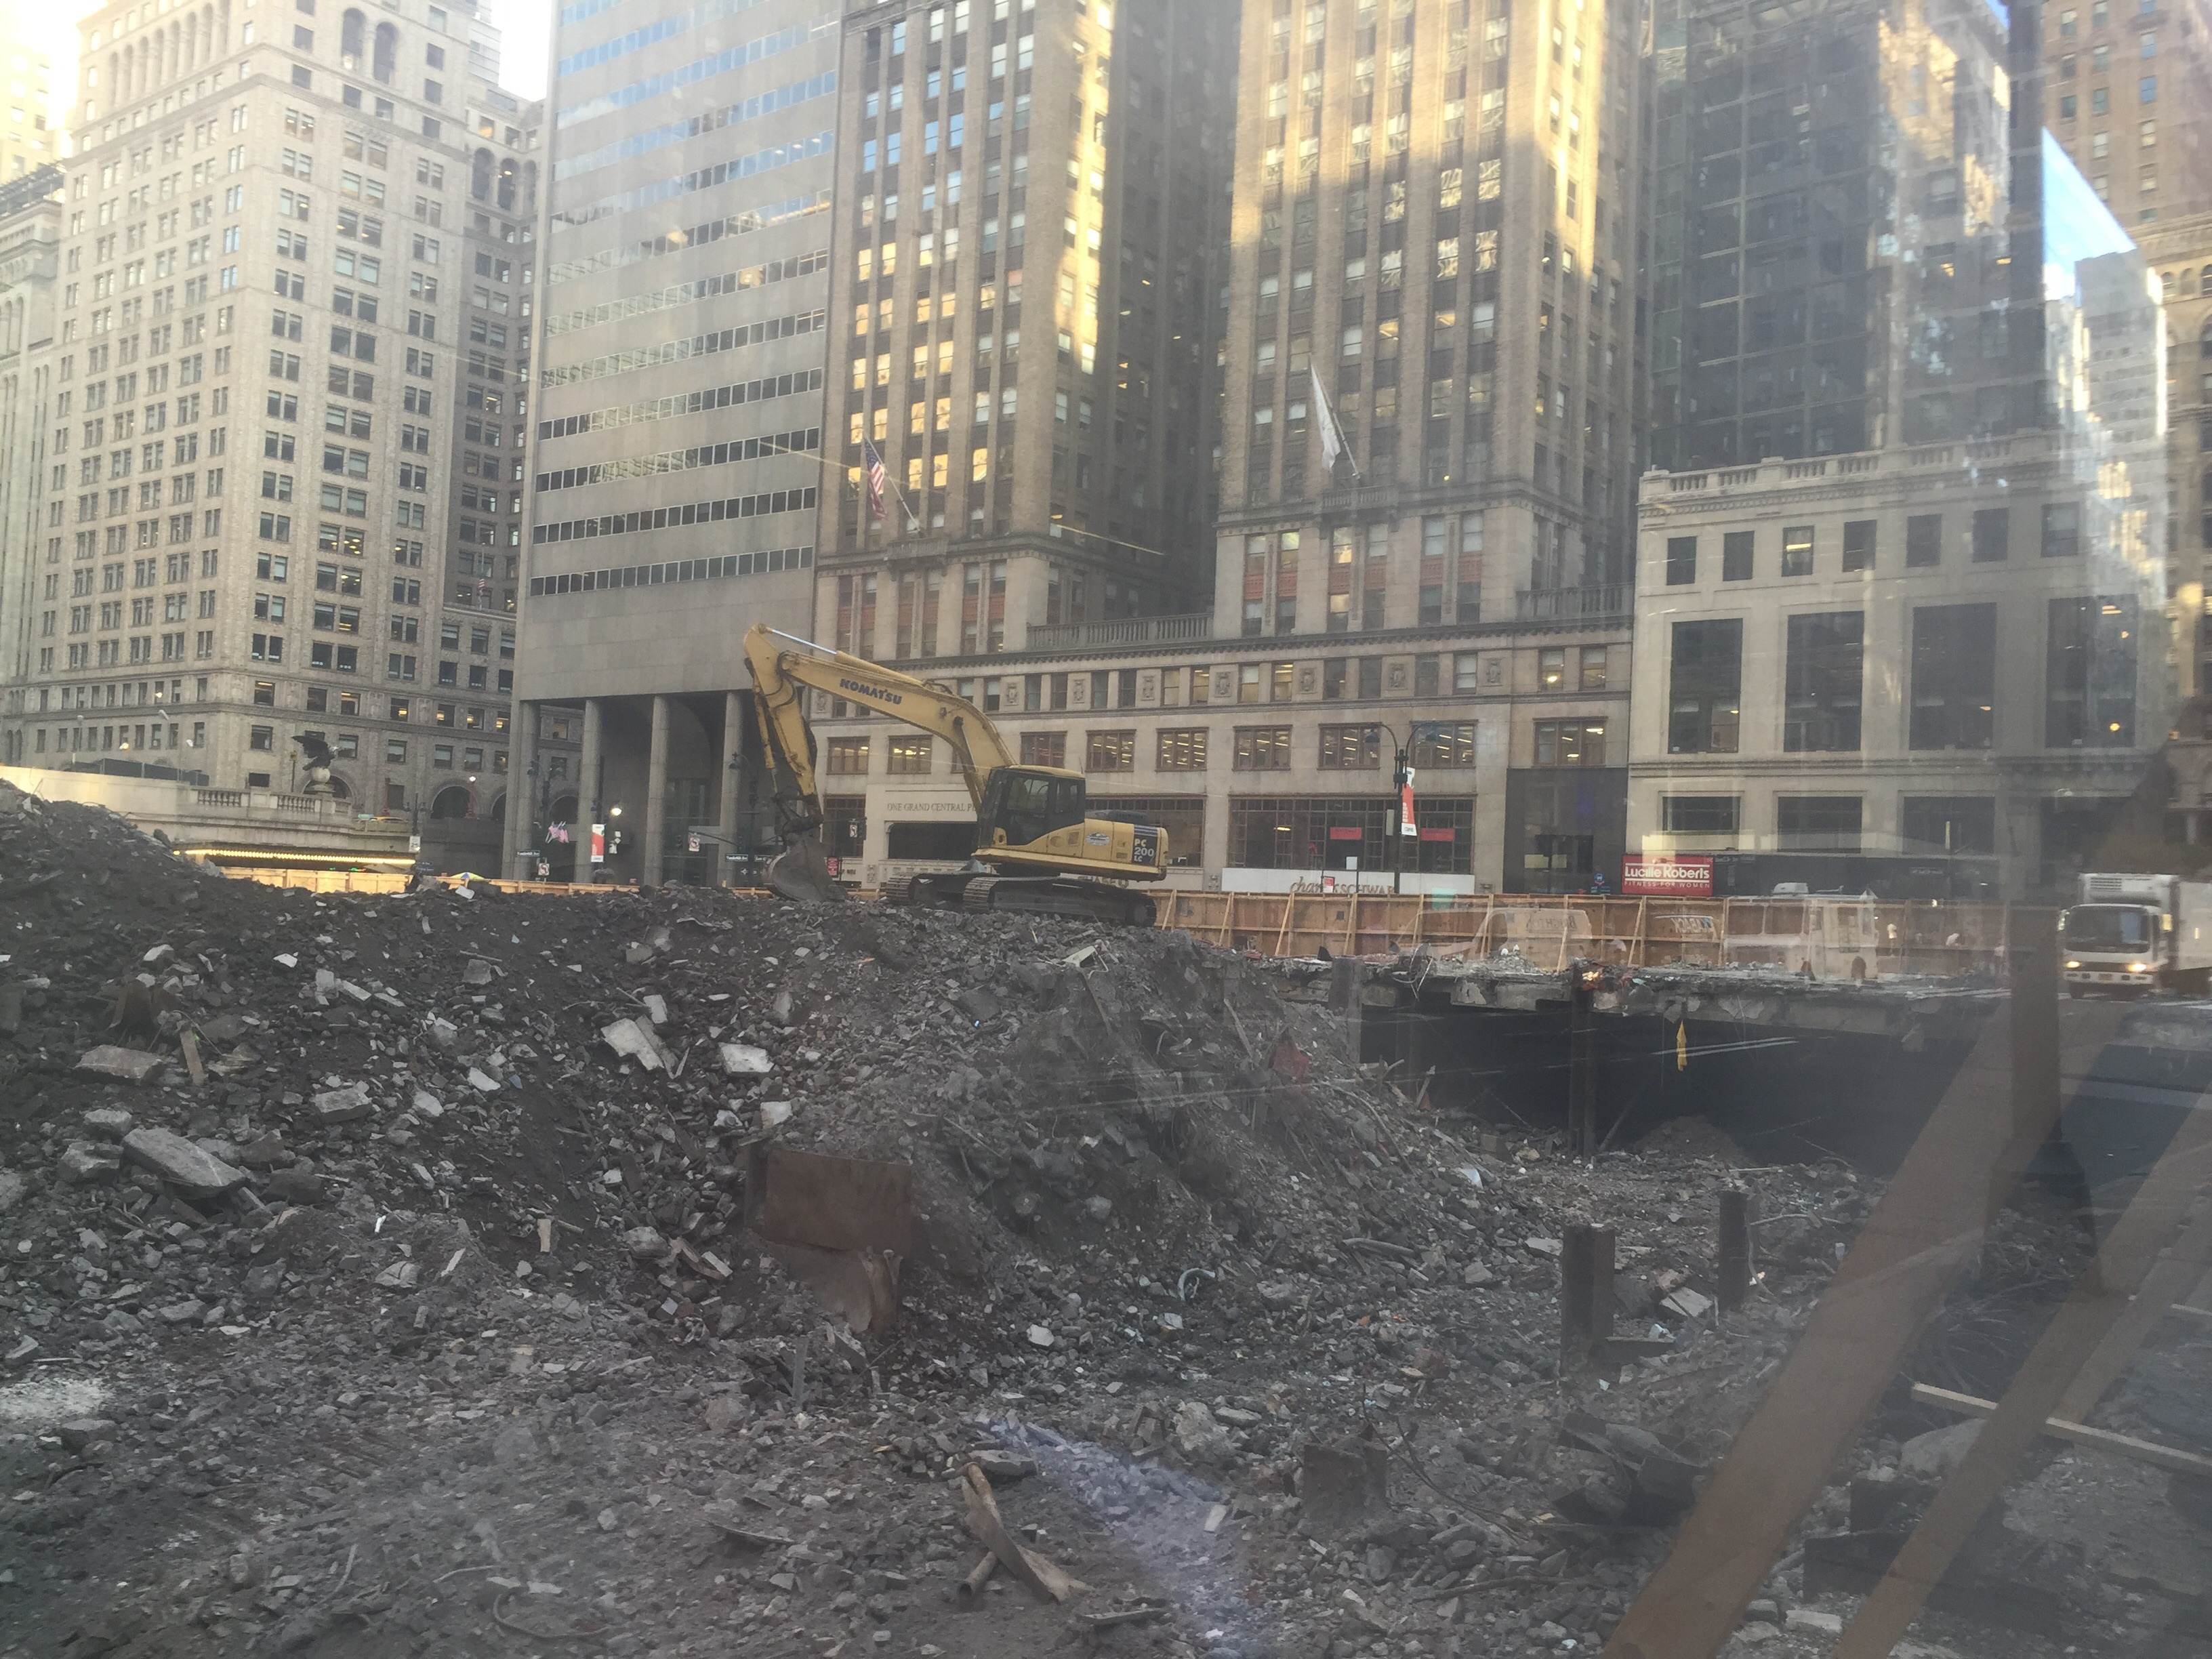 Excavation at One Vanderbilt site, August 15, 2016. Photo by YIMBY Forums user robertwalpole